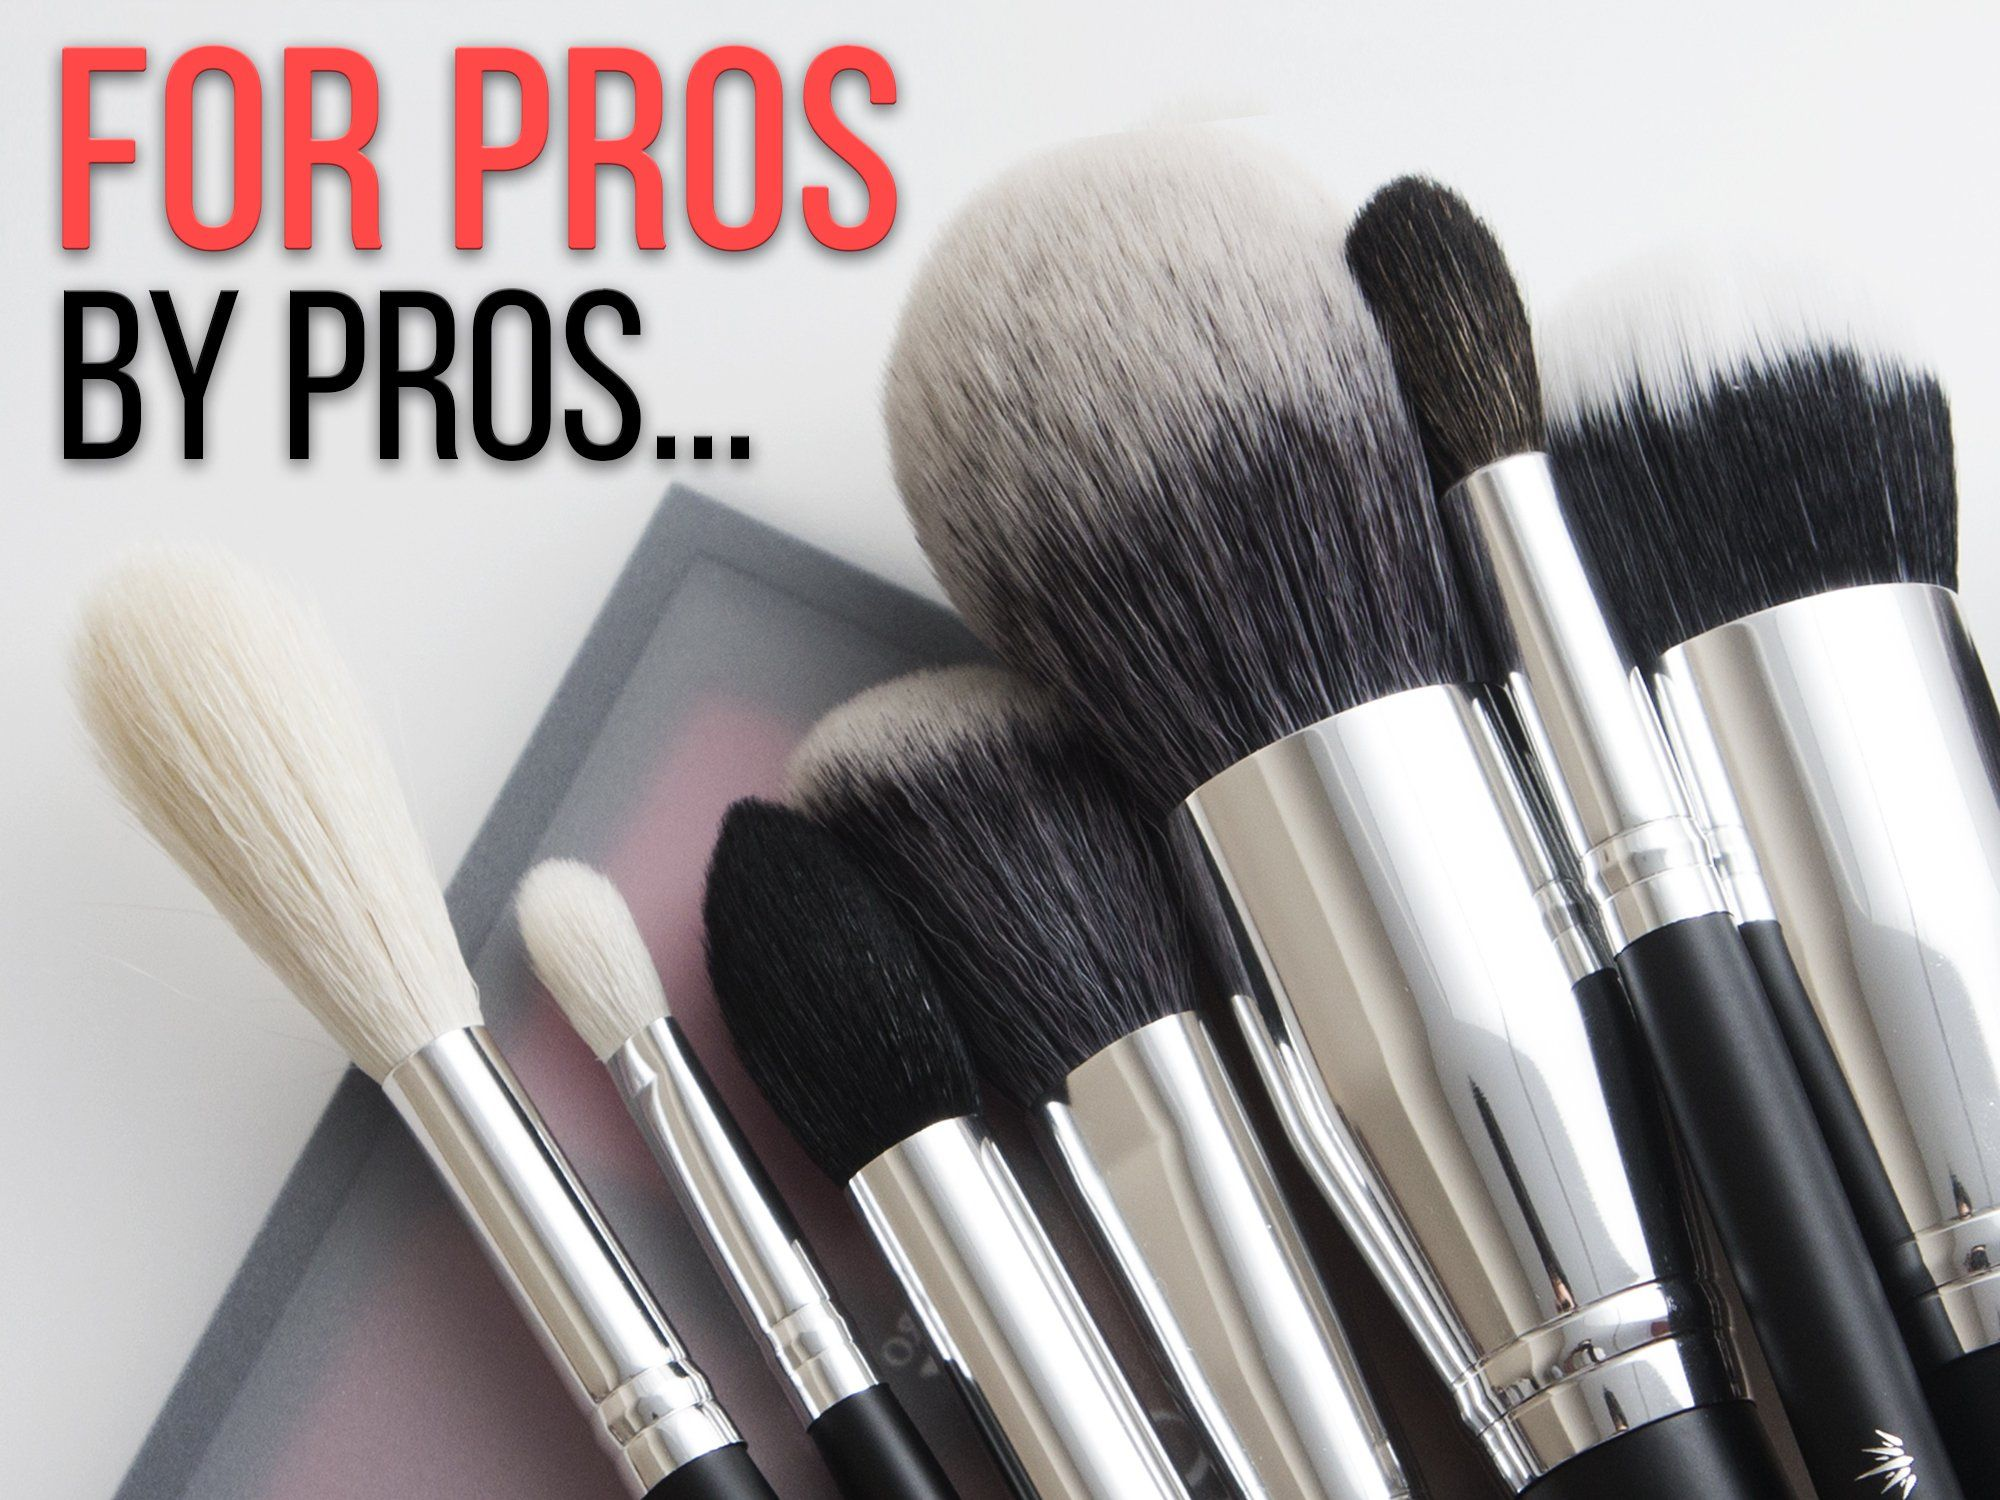 Crown Makeup Brushes, Cosmetics, and Brush Sets. Crown